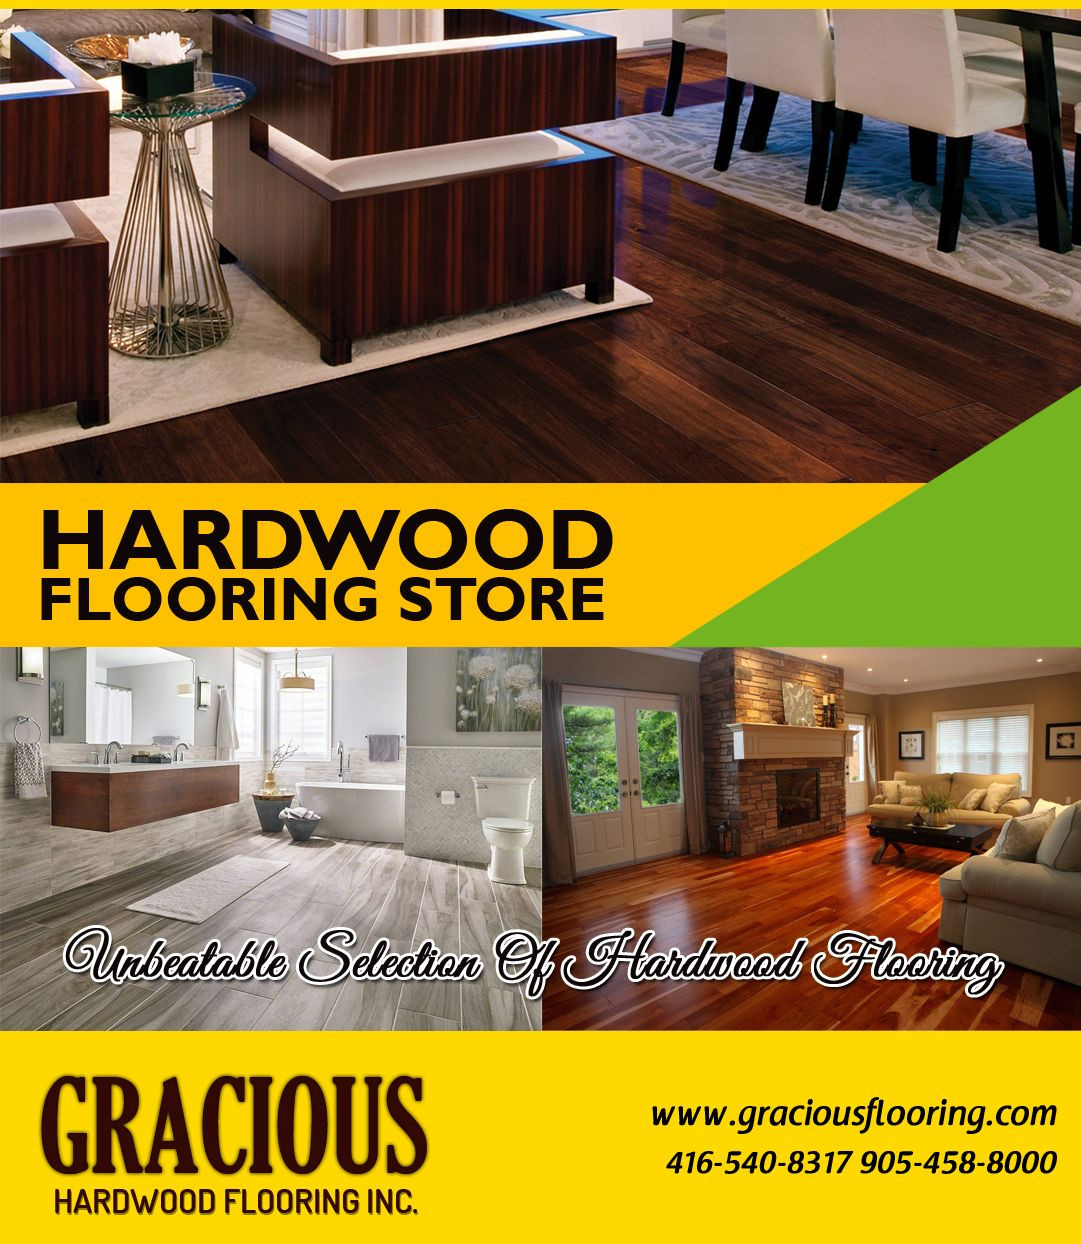 15 Ideal How to Clean Prefinished Hardwood Flooring Best Product 2021 free download how to clean prefinished hardwood flooring best product of hello guys if you want to purchase best and and designer hardwood regarding hello guys if you want to purchase best and and designe